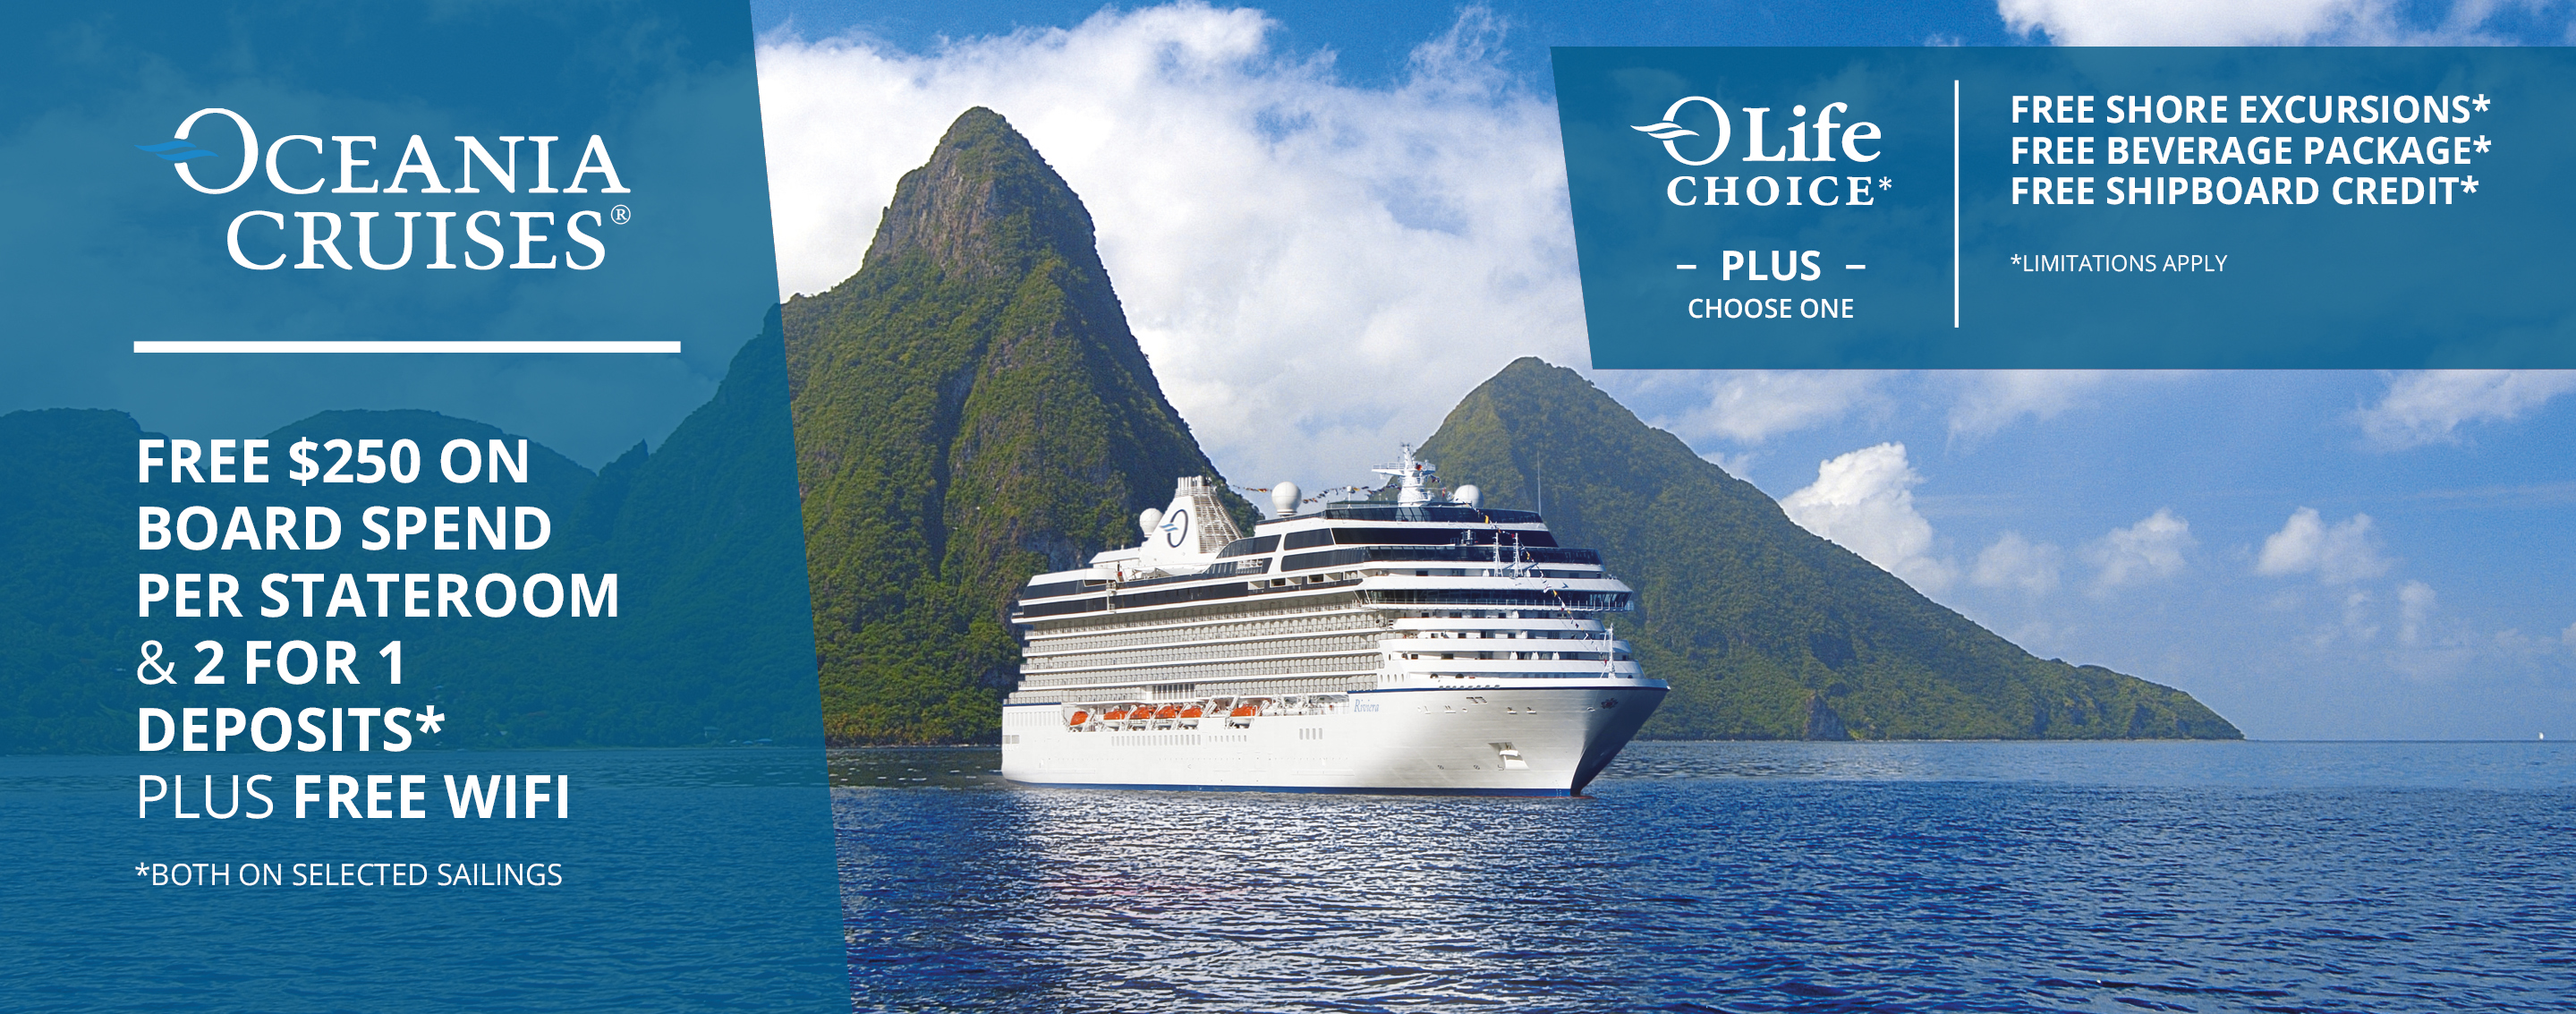 Last minute deals oceania cruises - Coupon code rocky